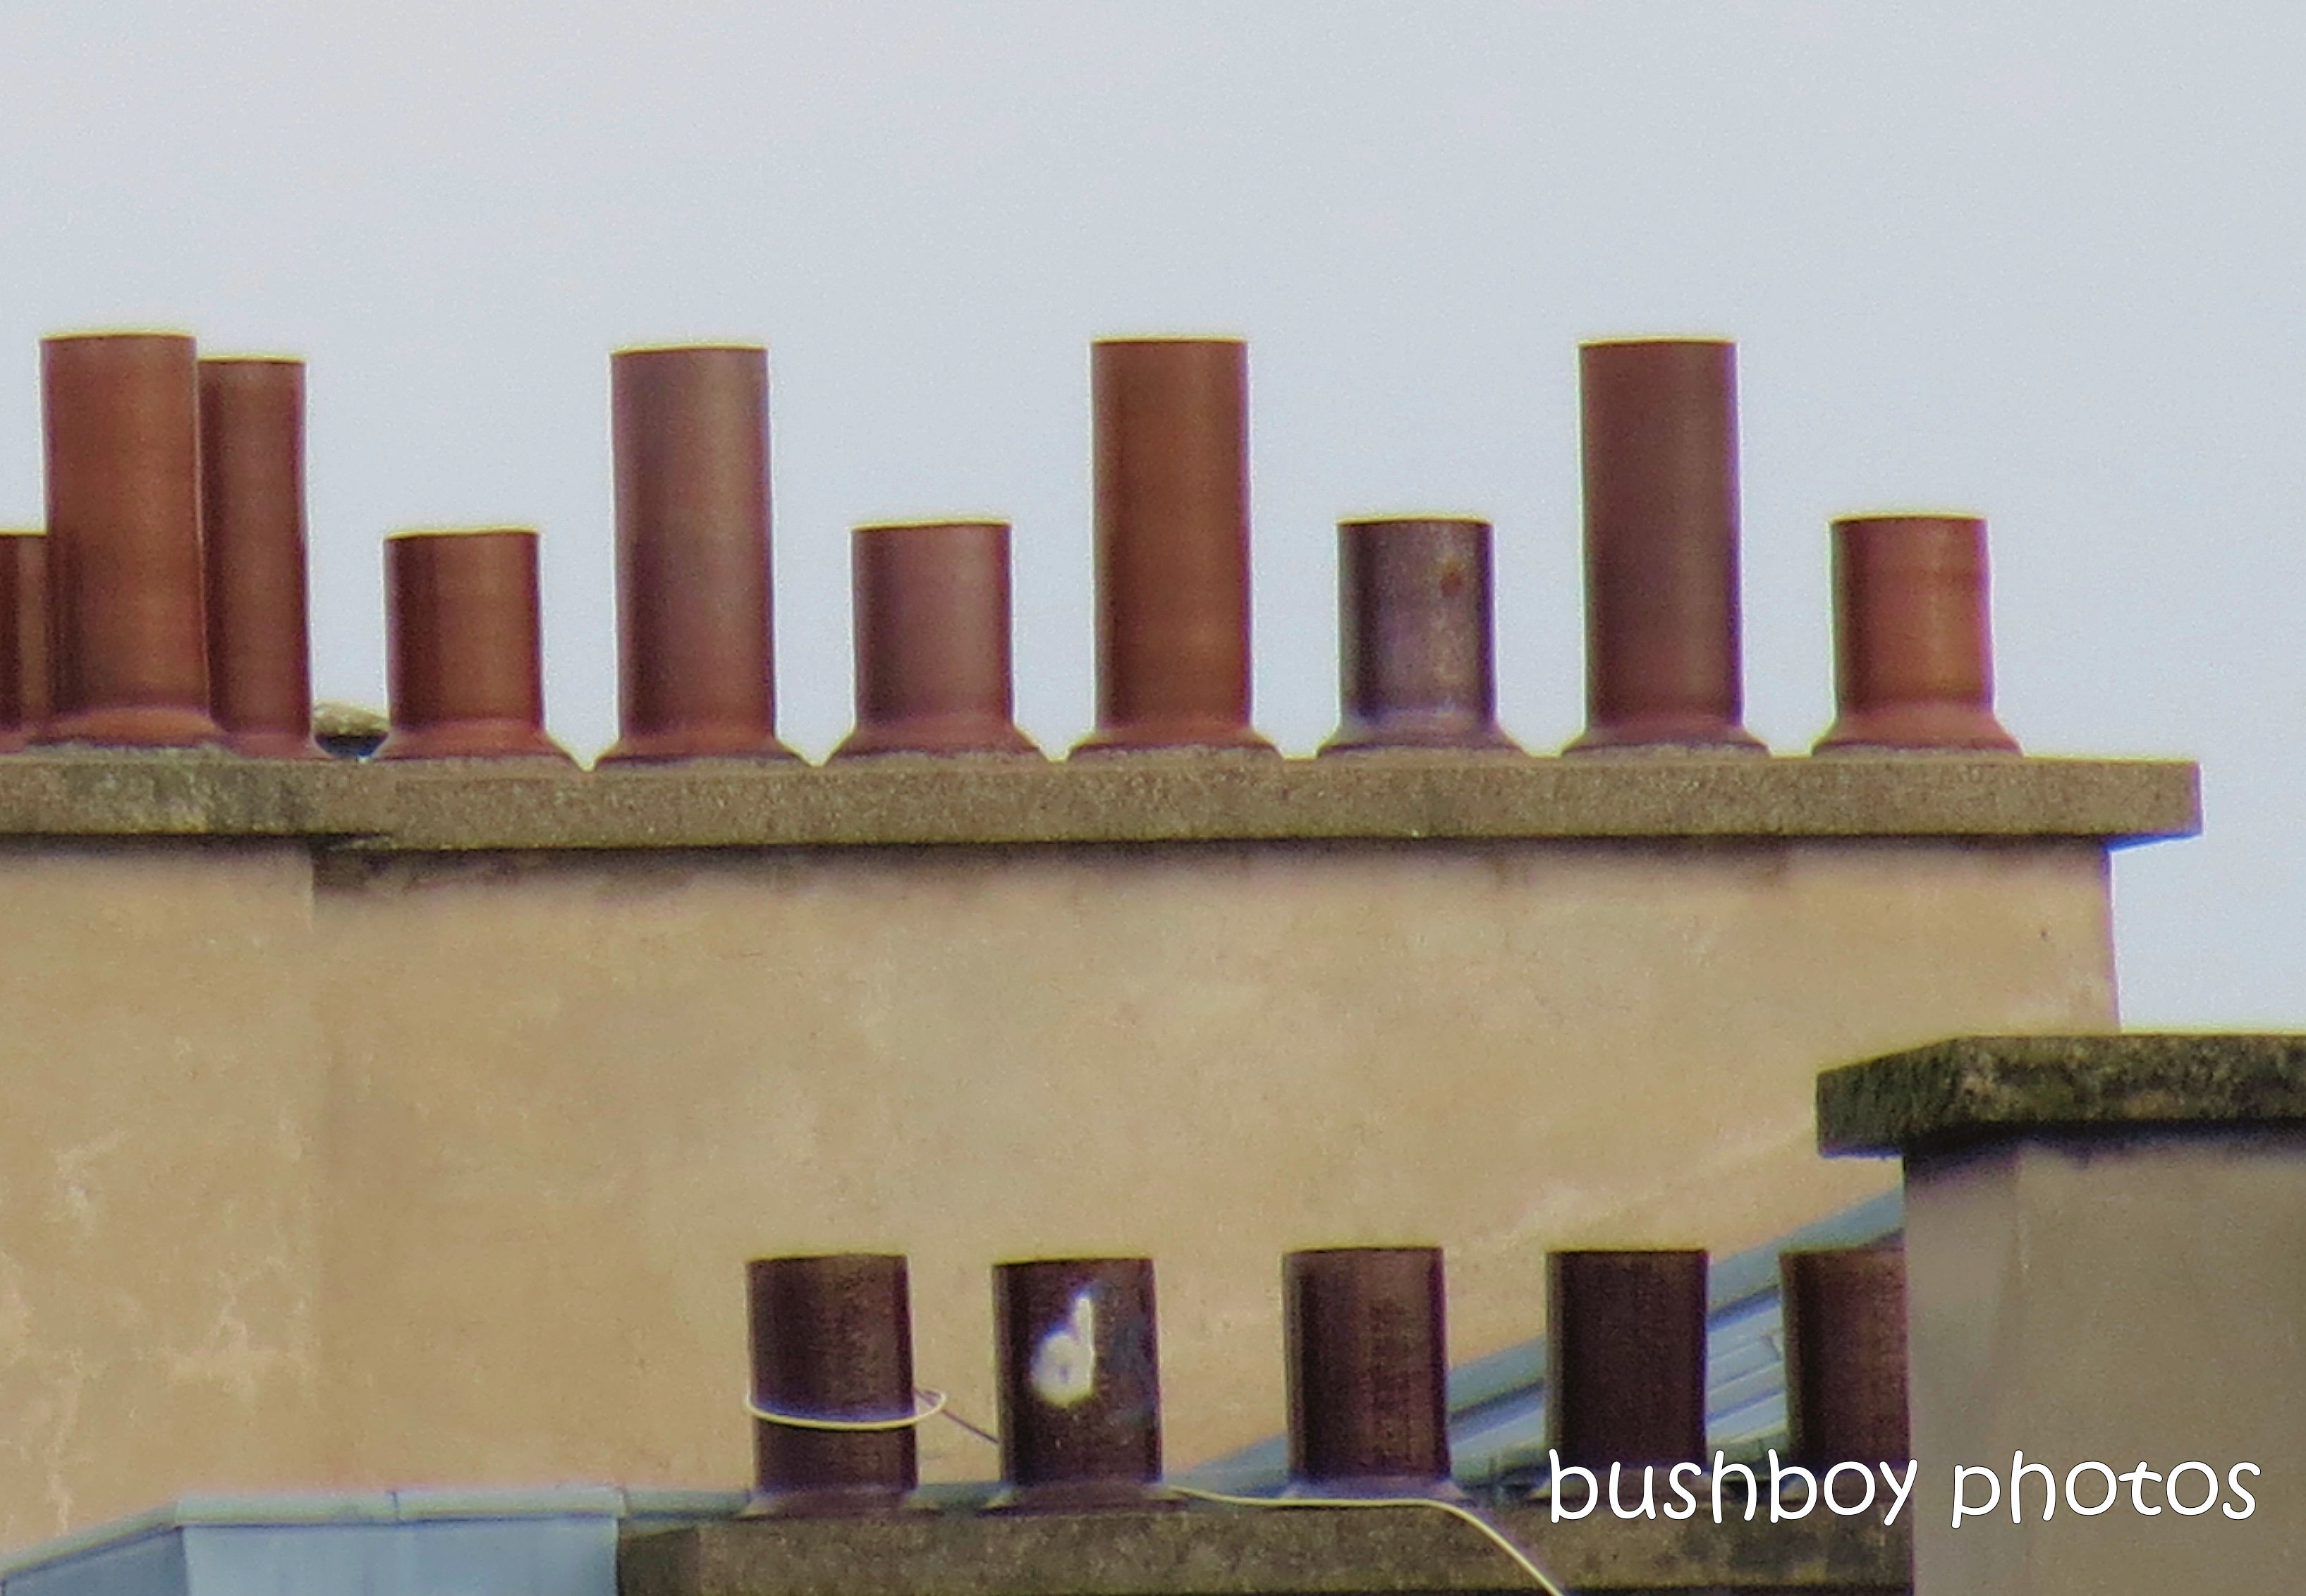 190328_blog_challenge_in_a_row_chimney_pots_paris2